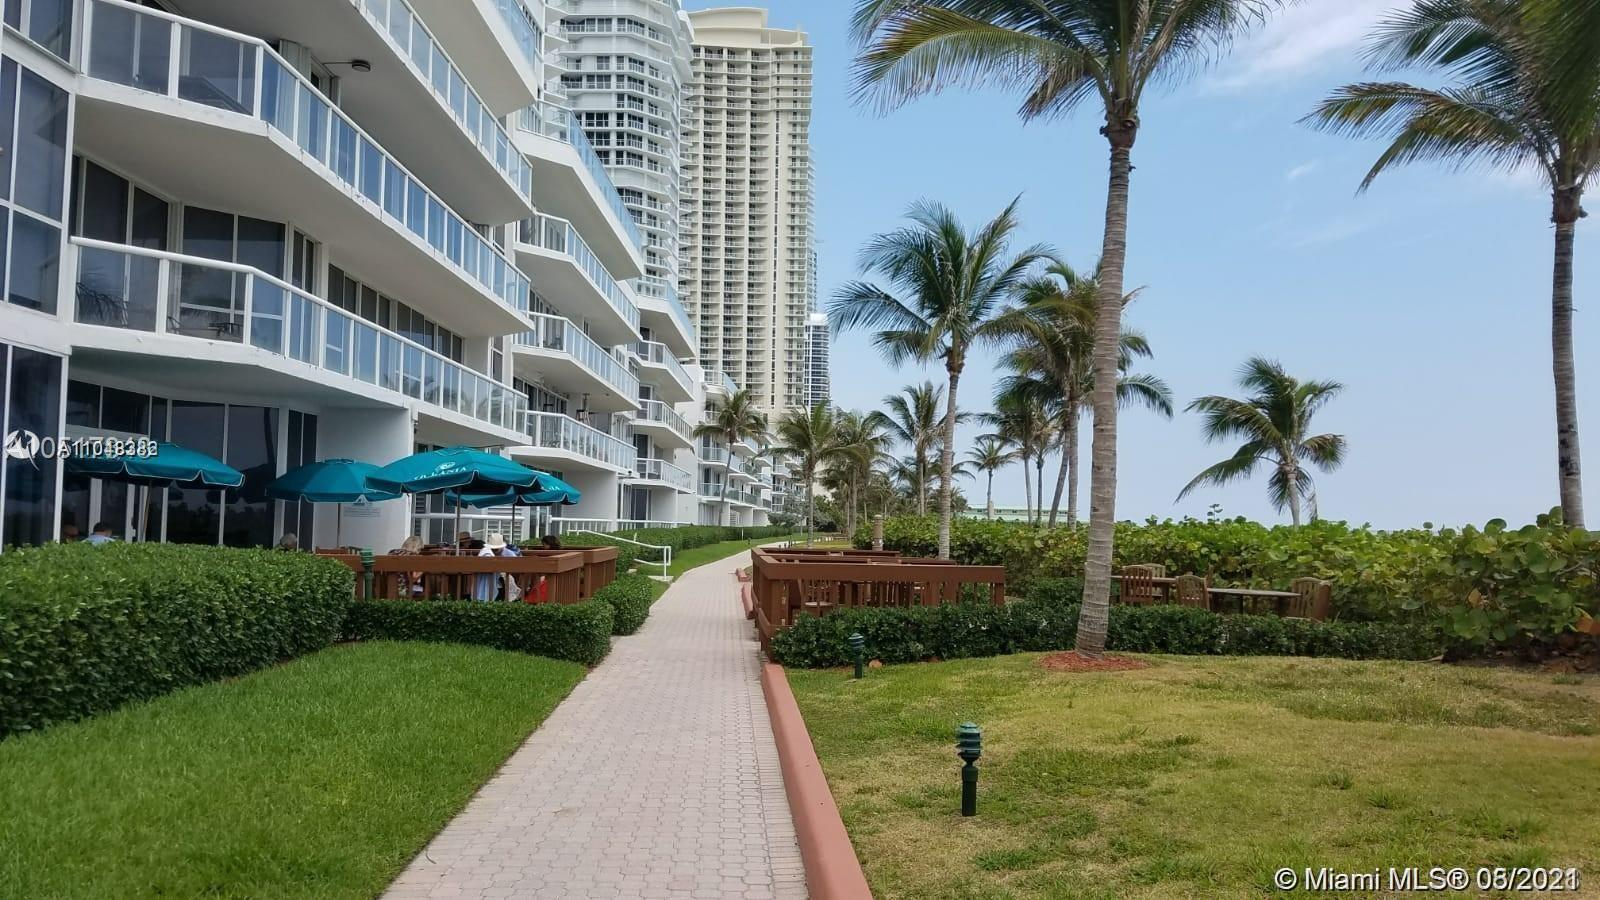 SPECTACULAR 3 BED / 3 BATH, CORNER OCEANFRONT MASTERPIECE, COMPLETELY UPGRADED PROFESSIONALLY DESIGN